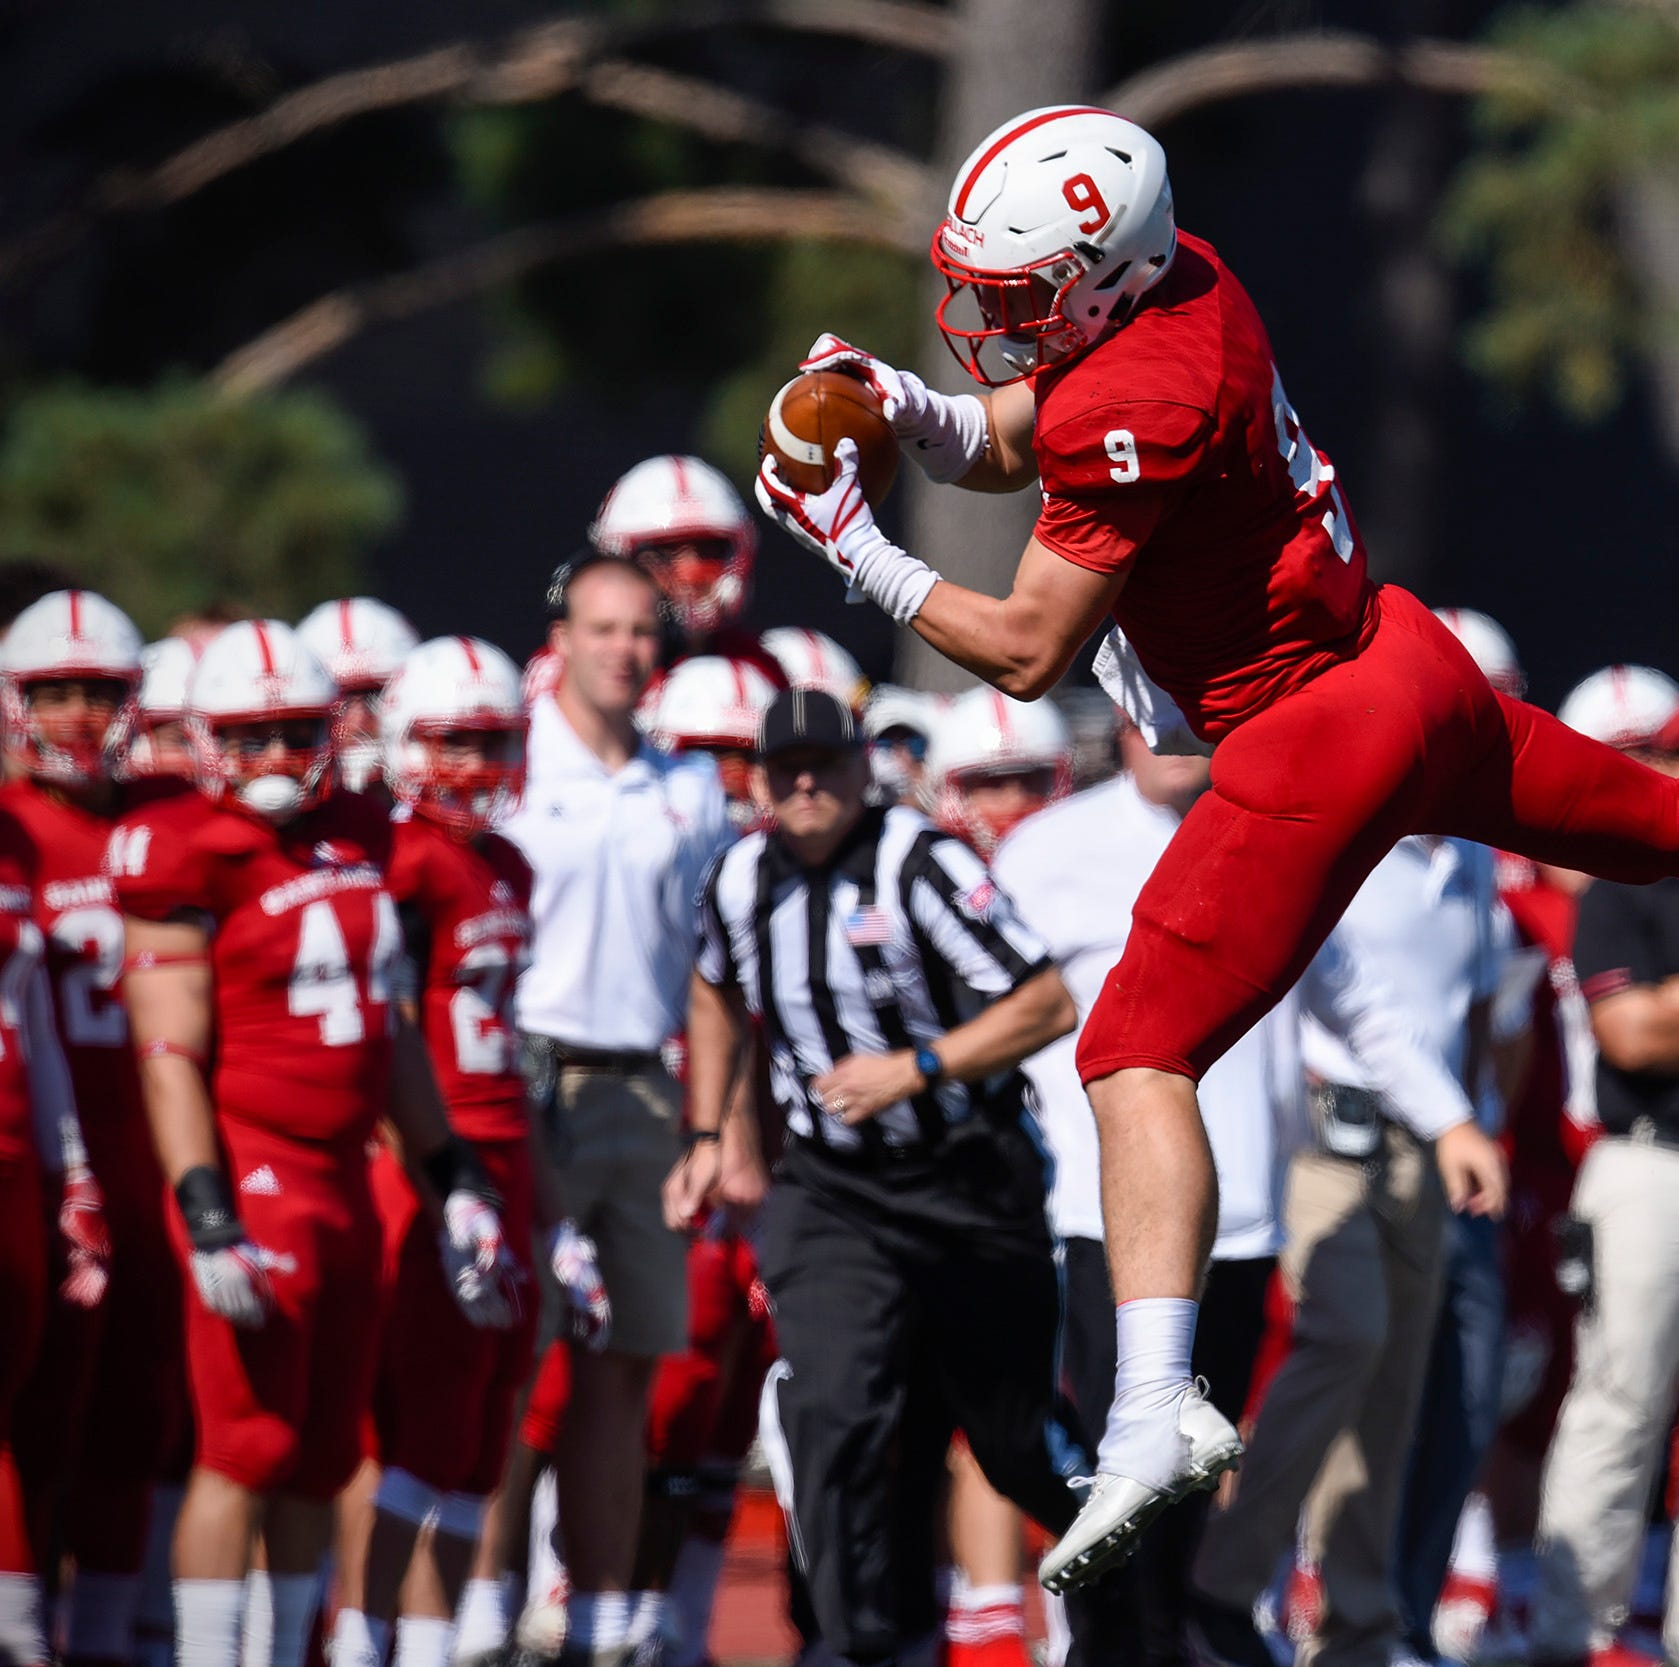 Happy homecoming: Alvord, Johnnies have a good day